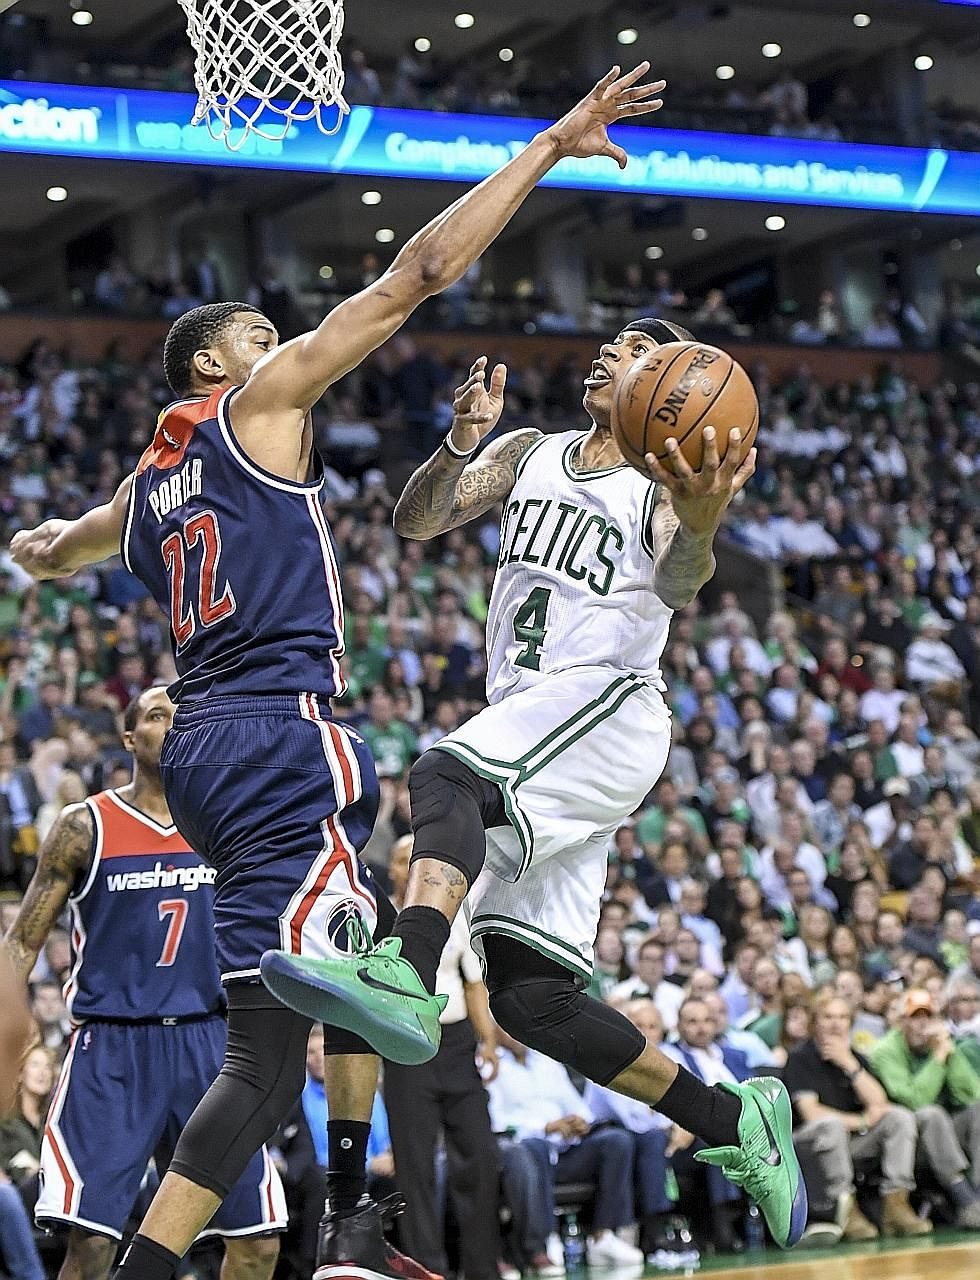 Celtics star Isaiah Thomas driving to the hoop against Wizards forward Otto Porter Jr during Game Two in Boston. Despite going through a six-hour dental procedure the day before, Thomas connected on 18 of 33 shots.